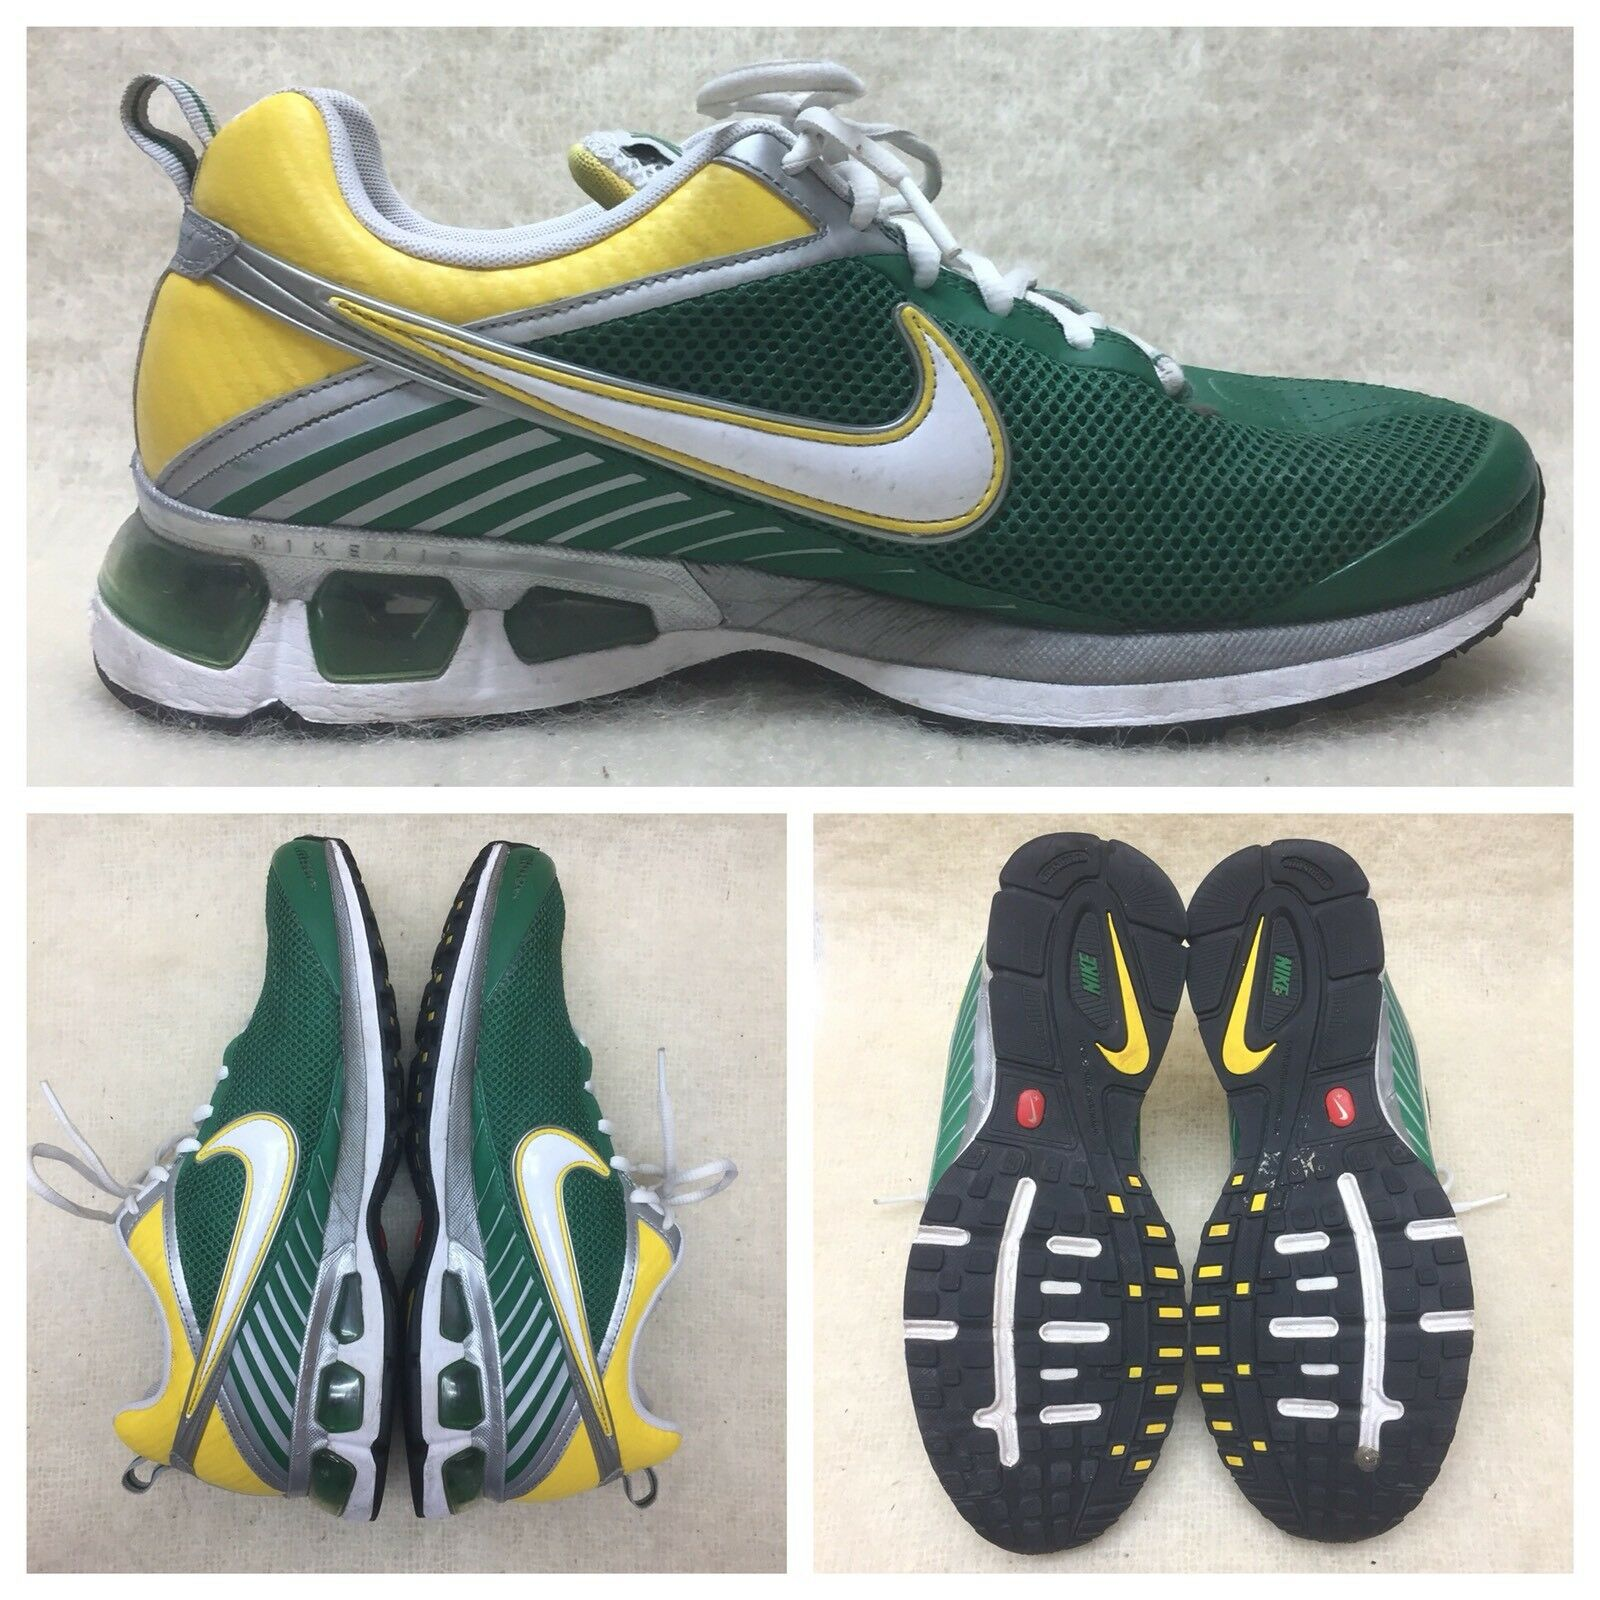 Men's Nike Air Max Agitate green yellow white running shoes 376983-310 SZ 11.5